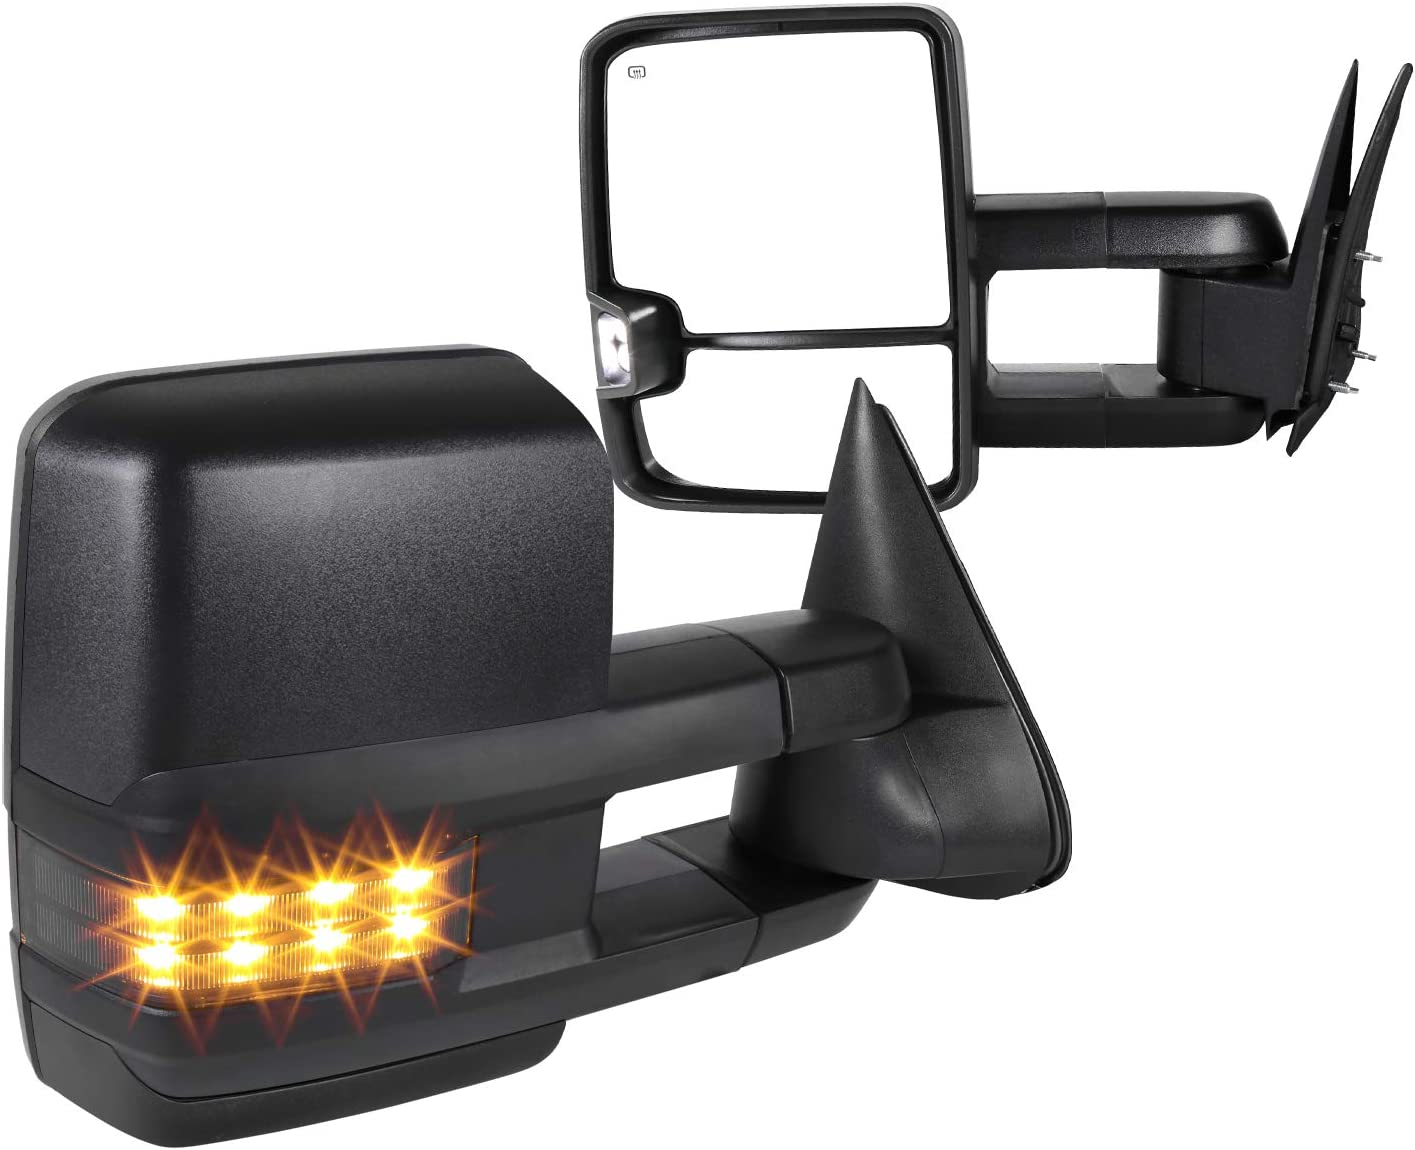 Spec-D Tuning Facelift Style Power + Heated Towing Mirrors + Led